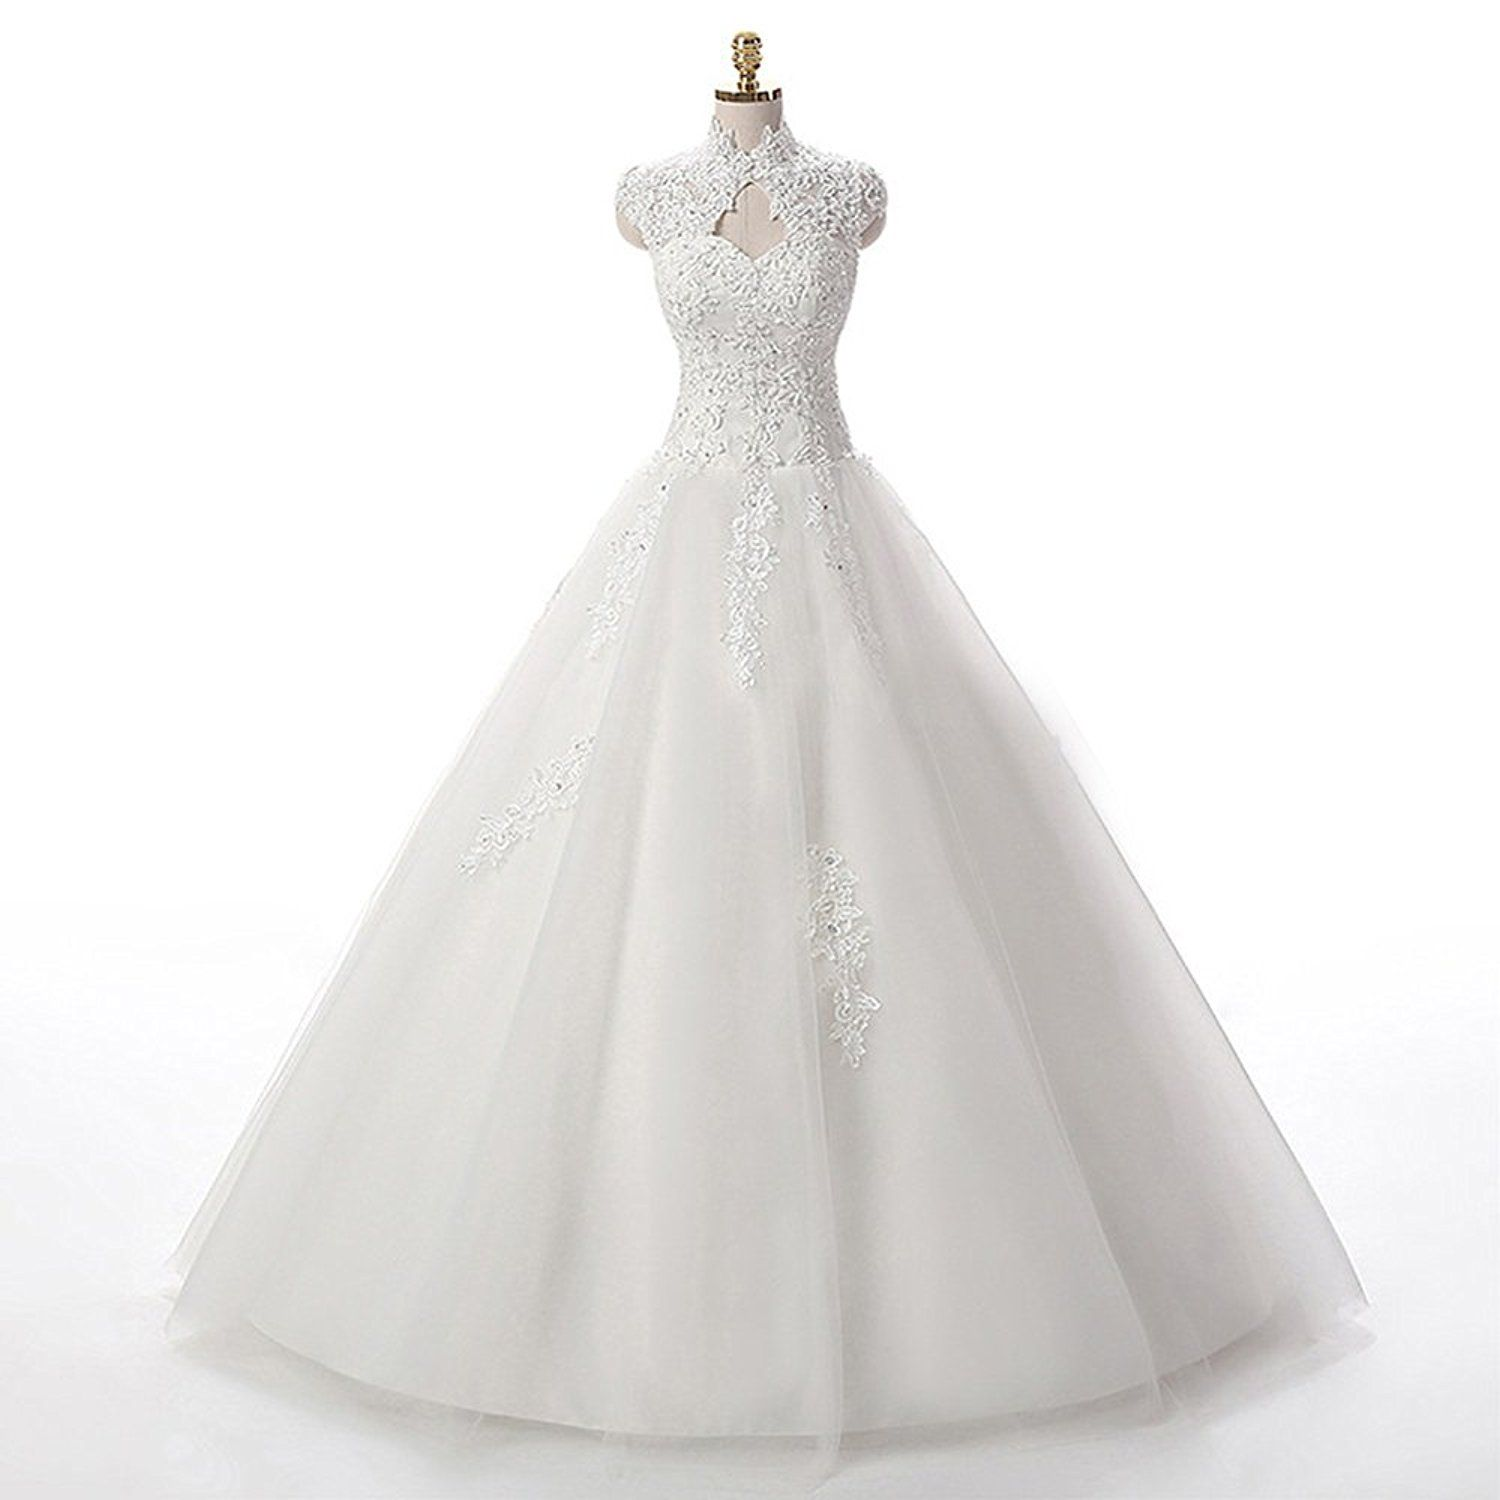 Lace cap sleeve a line wedding dress  Lampang A Line Lace Wedding Dress Tulle Cap Sleeve Long Wedding Gown